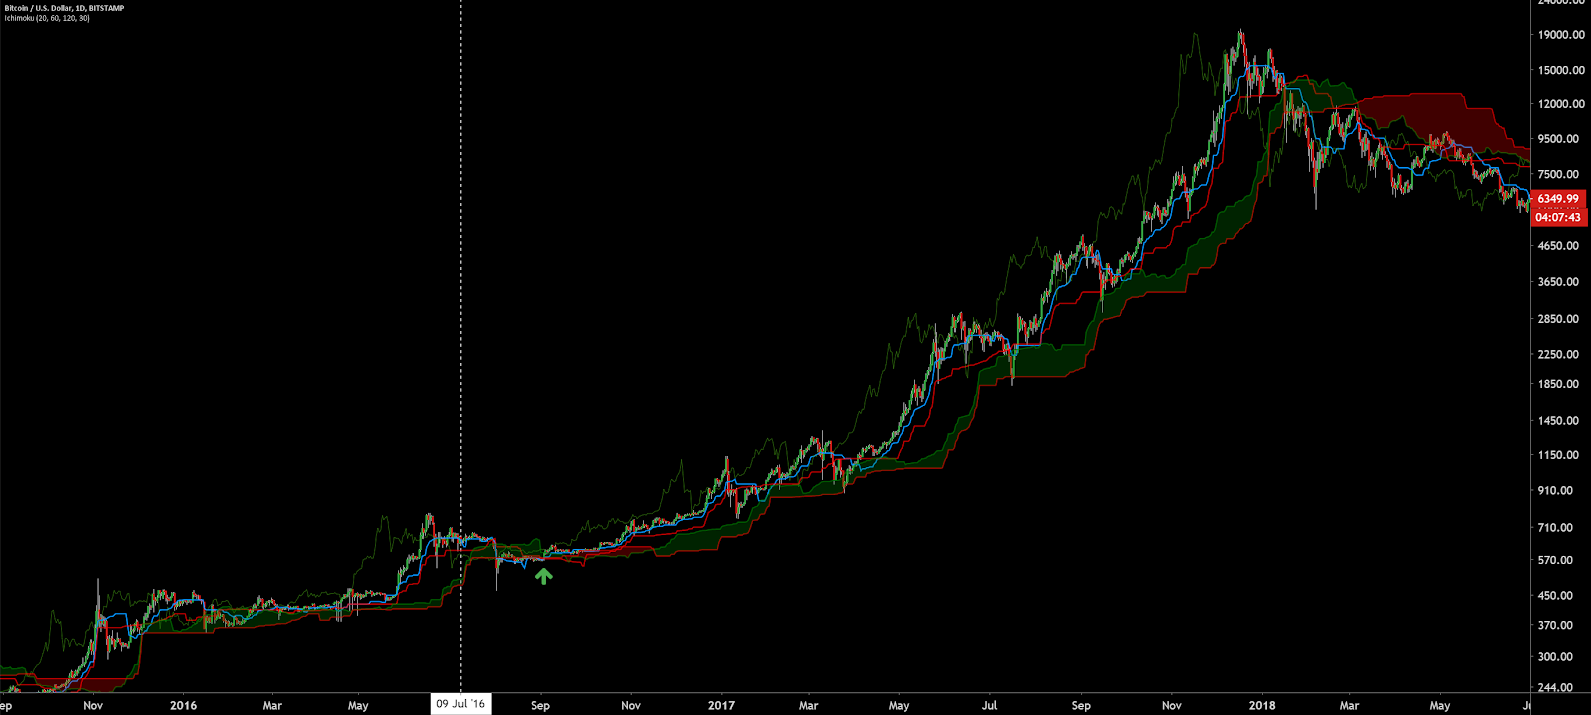 Data Snippet - Rare technical event suggests a possible trend shift for Bitcoin (3)